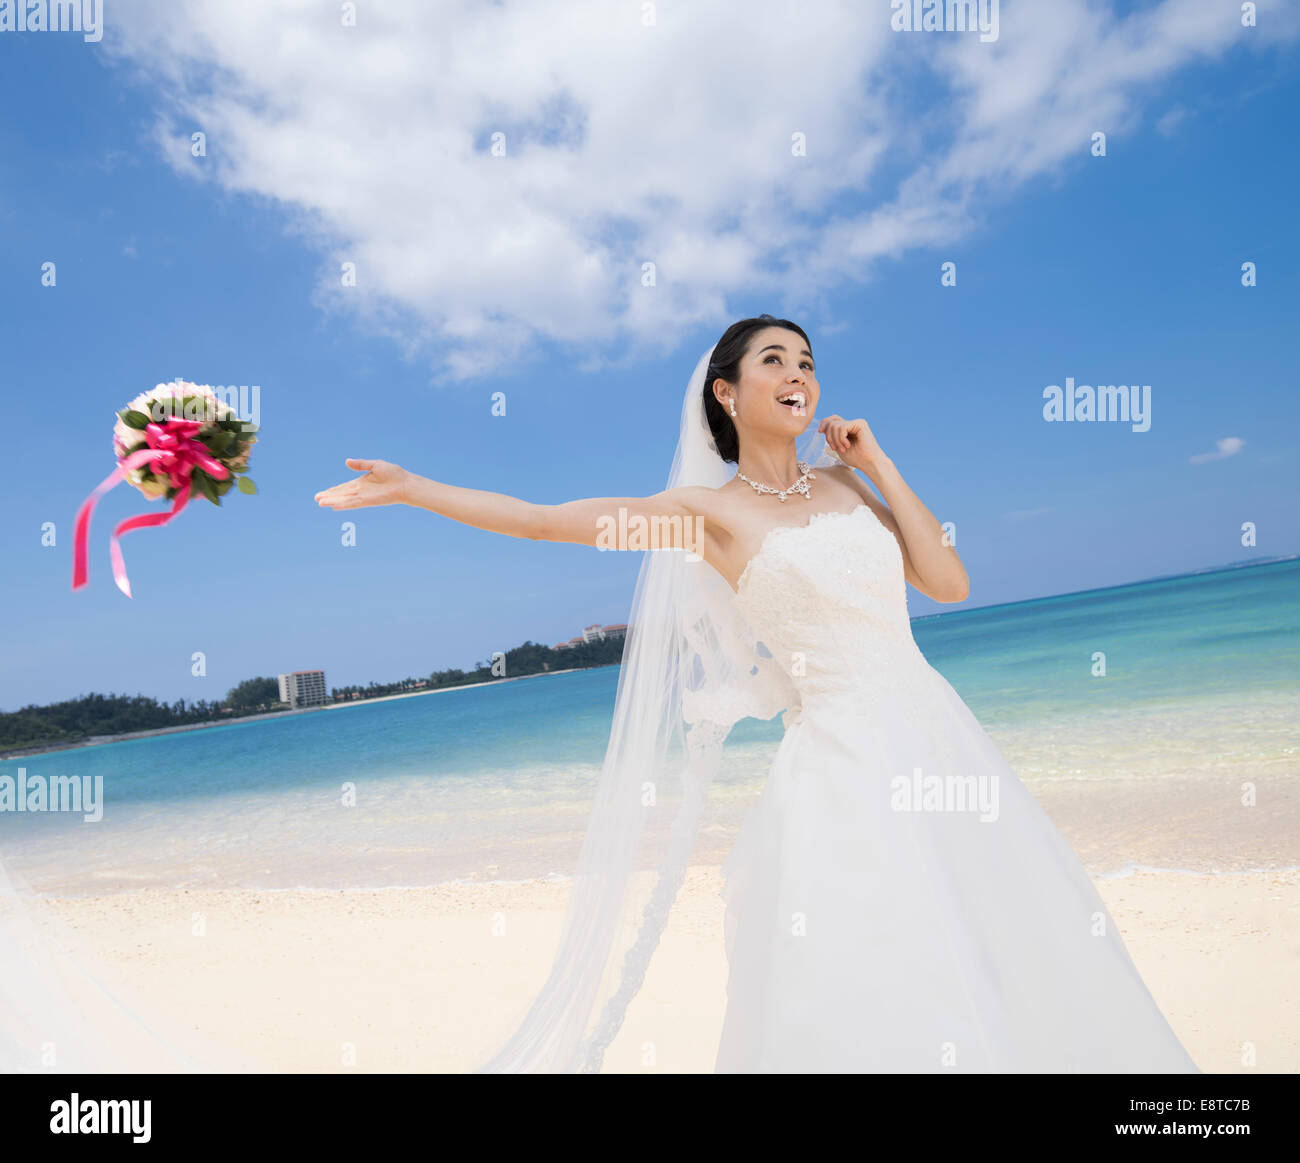 Mixed Race Asian American Bride In White Wedding Dress Throwing Bouquet At Destination Beach Okinawa Japan